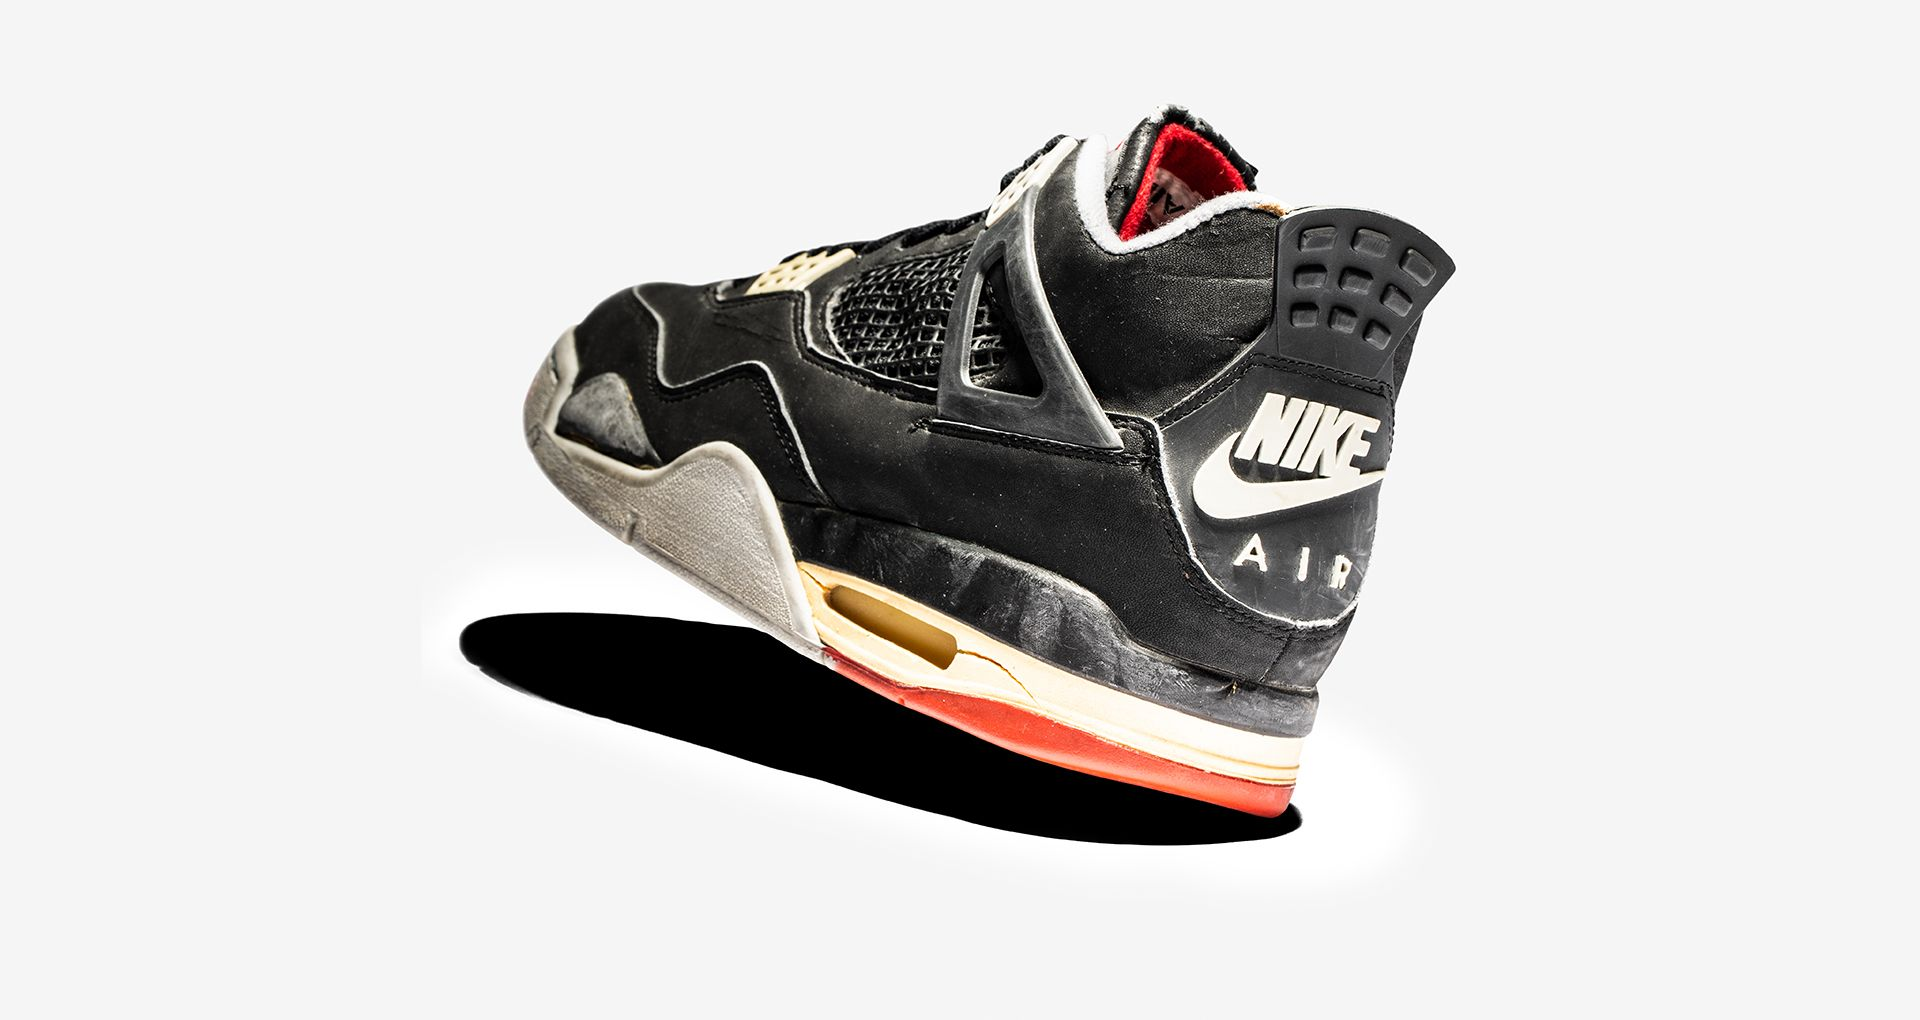 e510caf62b2 On Saturday, the 4th of May, Jordan Brand will release the Air Jordan 4 BRED  as Jordan Brand marks the silhouette's 30th anniversary.